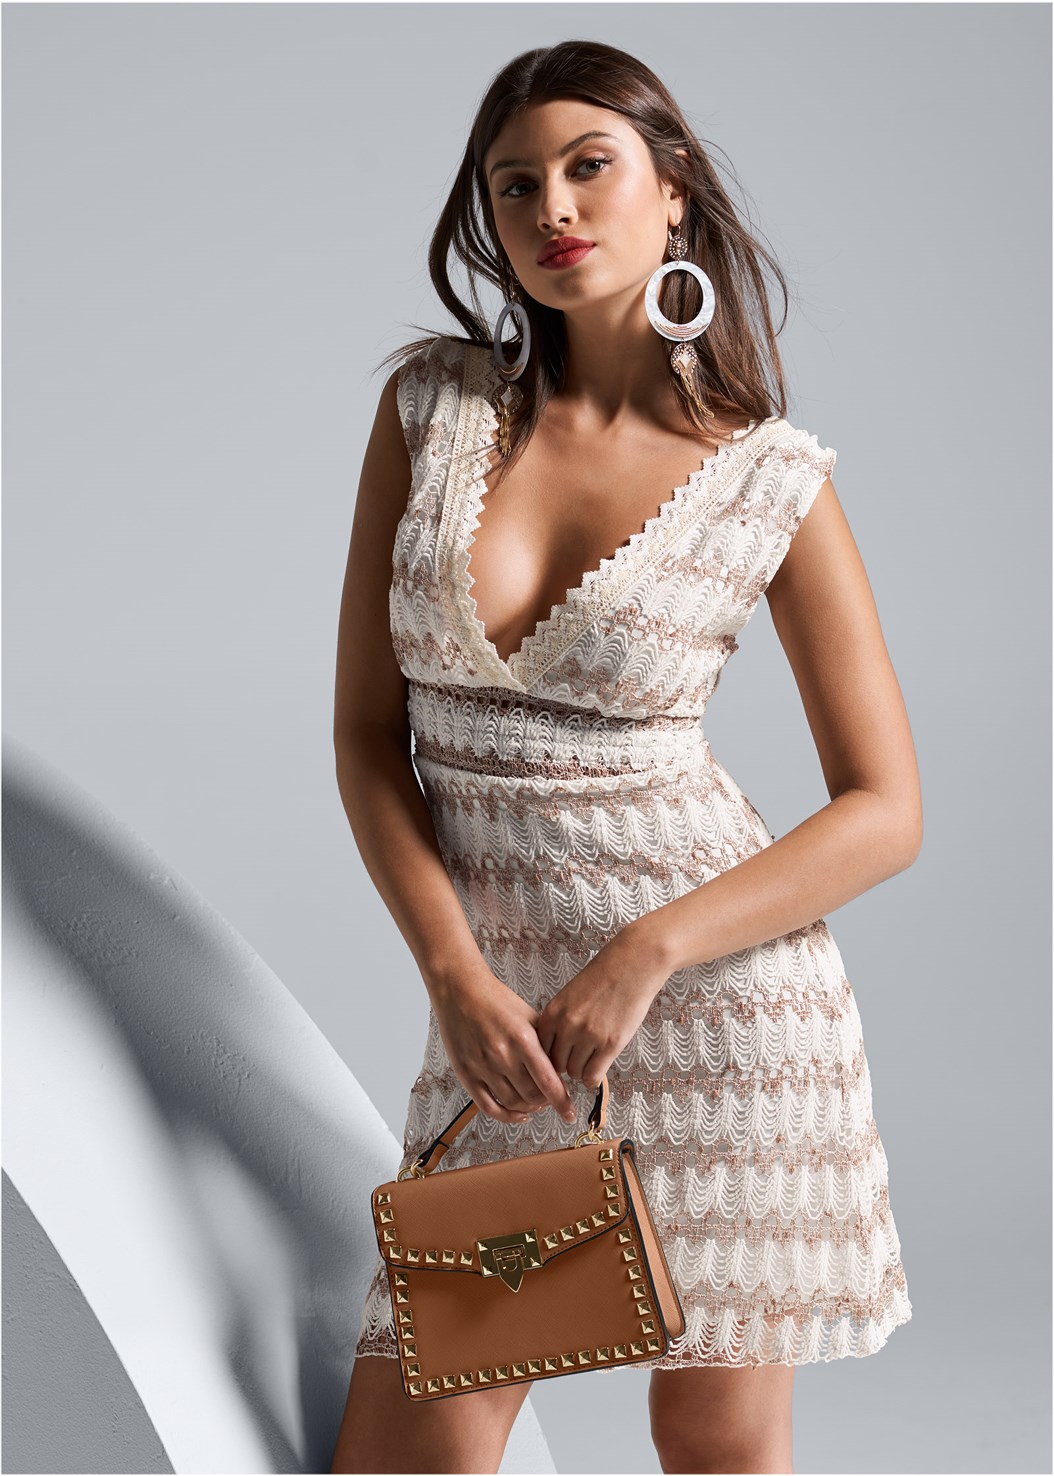 Lace Detail Dress,Cupid U Plunge Bra,Oversized Tassel Earrings,Stud Detail Handbag,Wicker Straw Bag